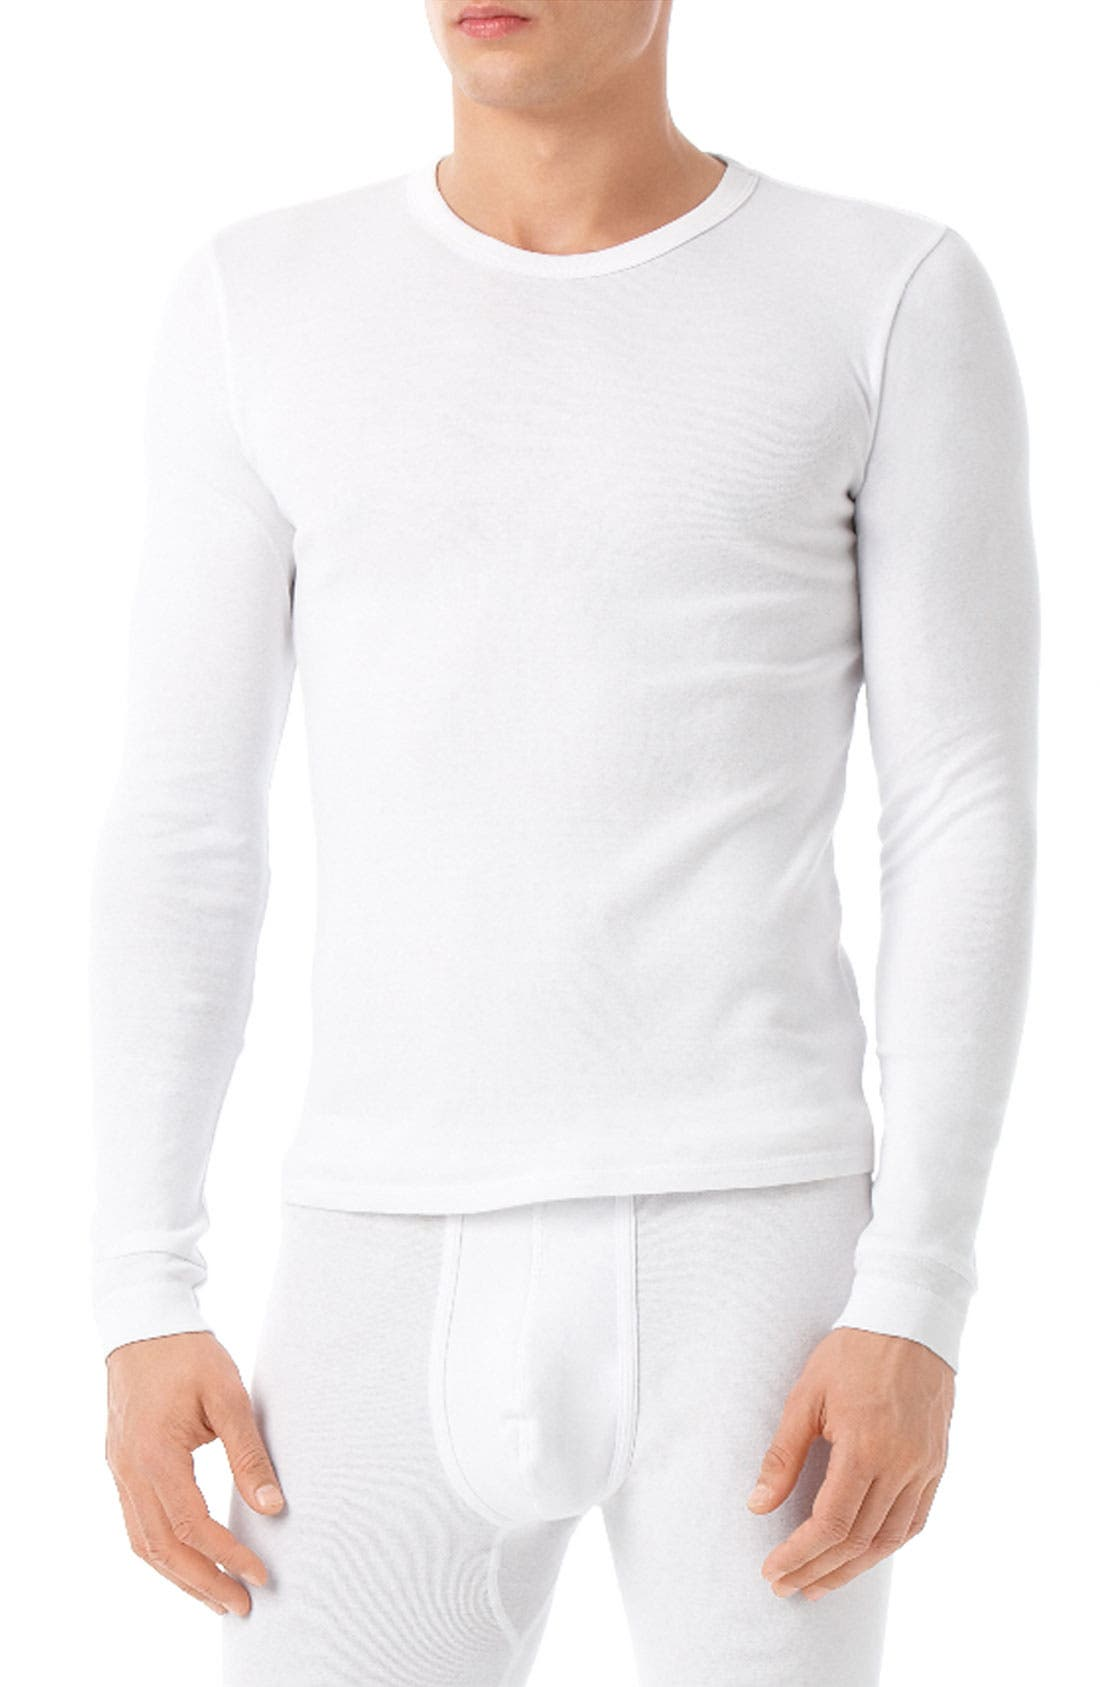 Main Image - Calvin Klein Fitted Long Sleeve Crewneck Shirt